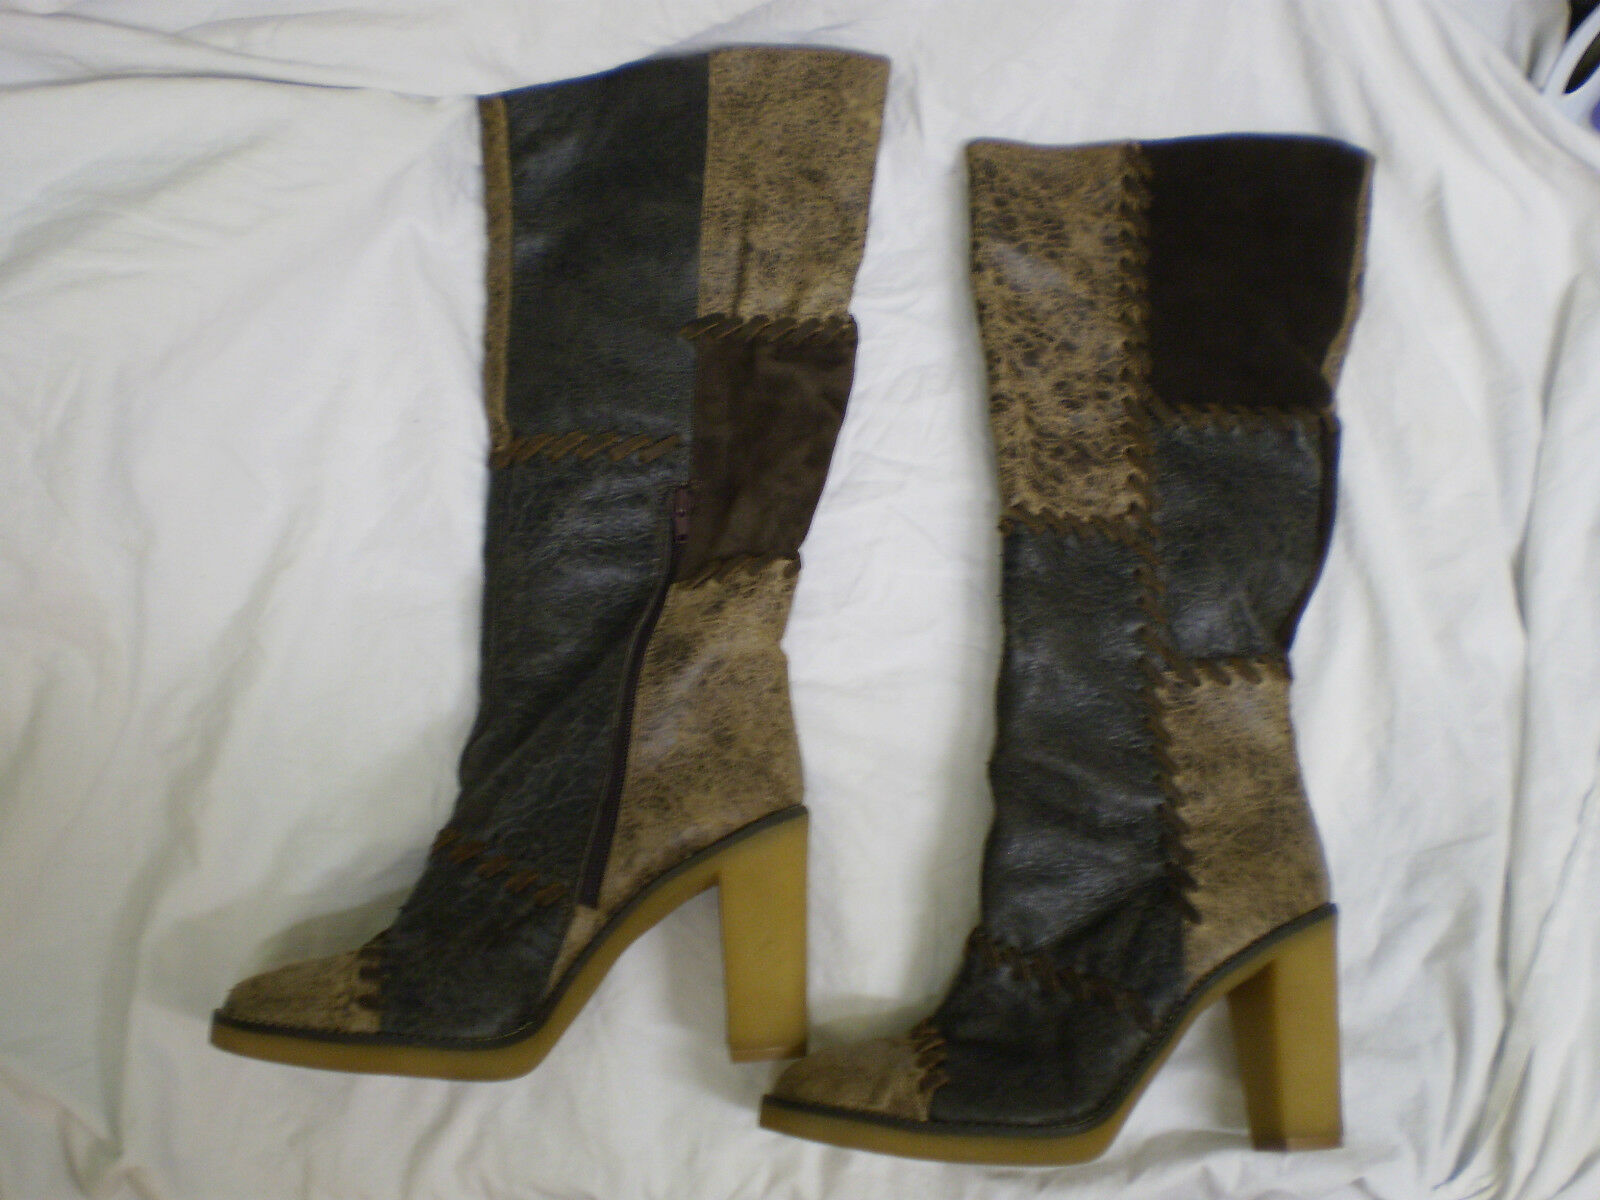 FAITH Brown Suede Leather Winter Womens Knee High Brighton Essex Boots Size